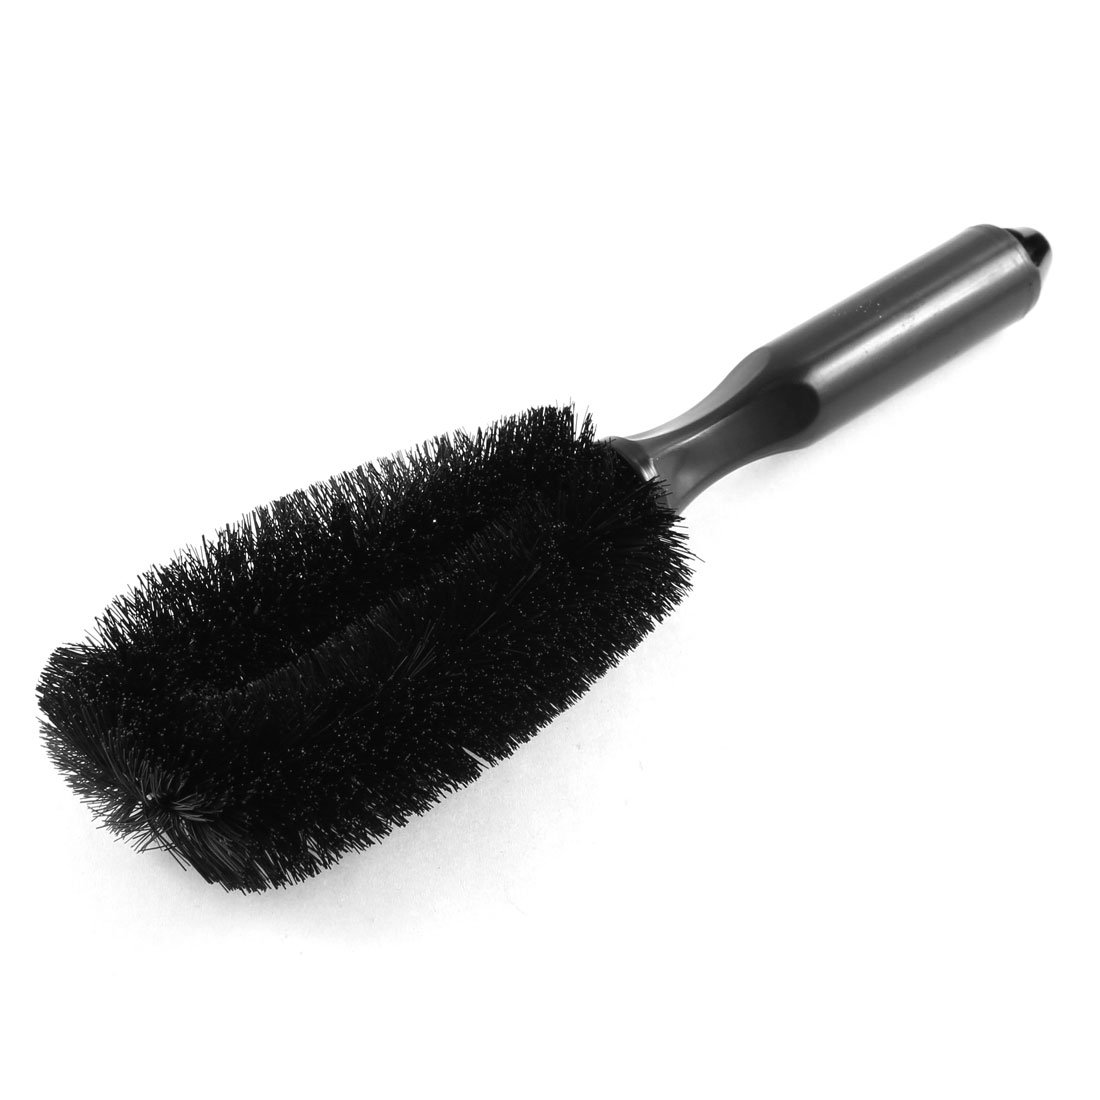 Car Wheel Tire Rim Cleaning Tool Brush 26cm Long